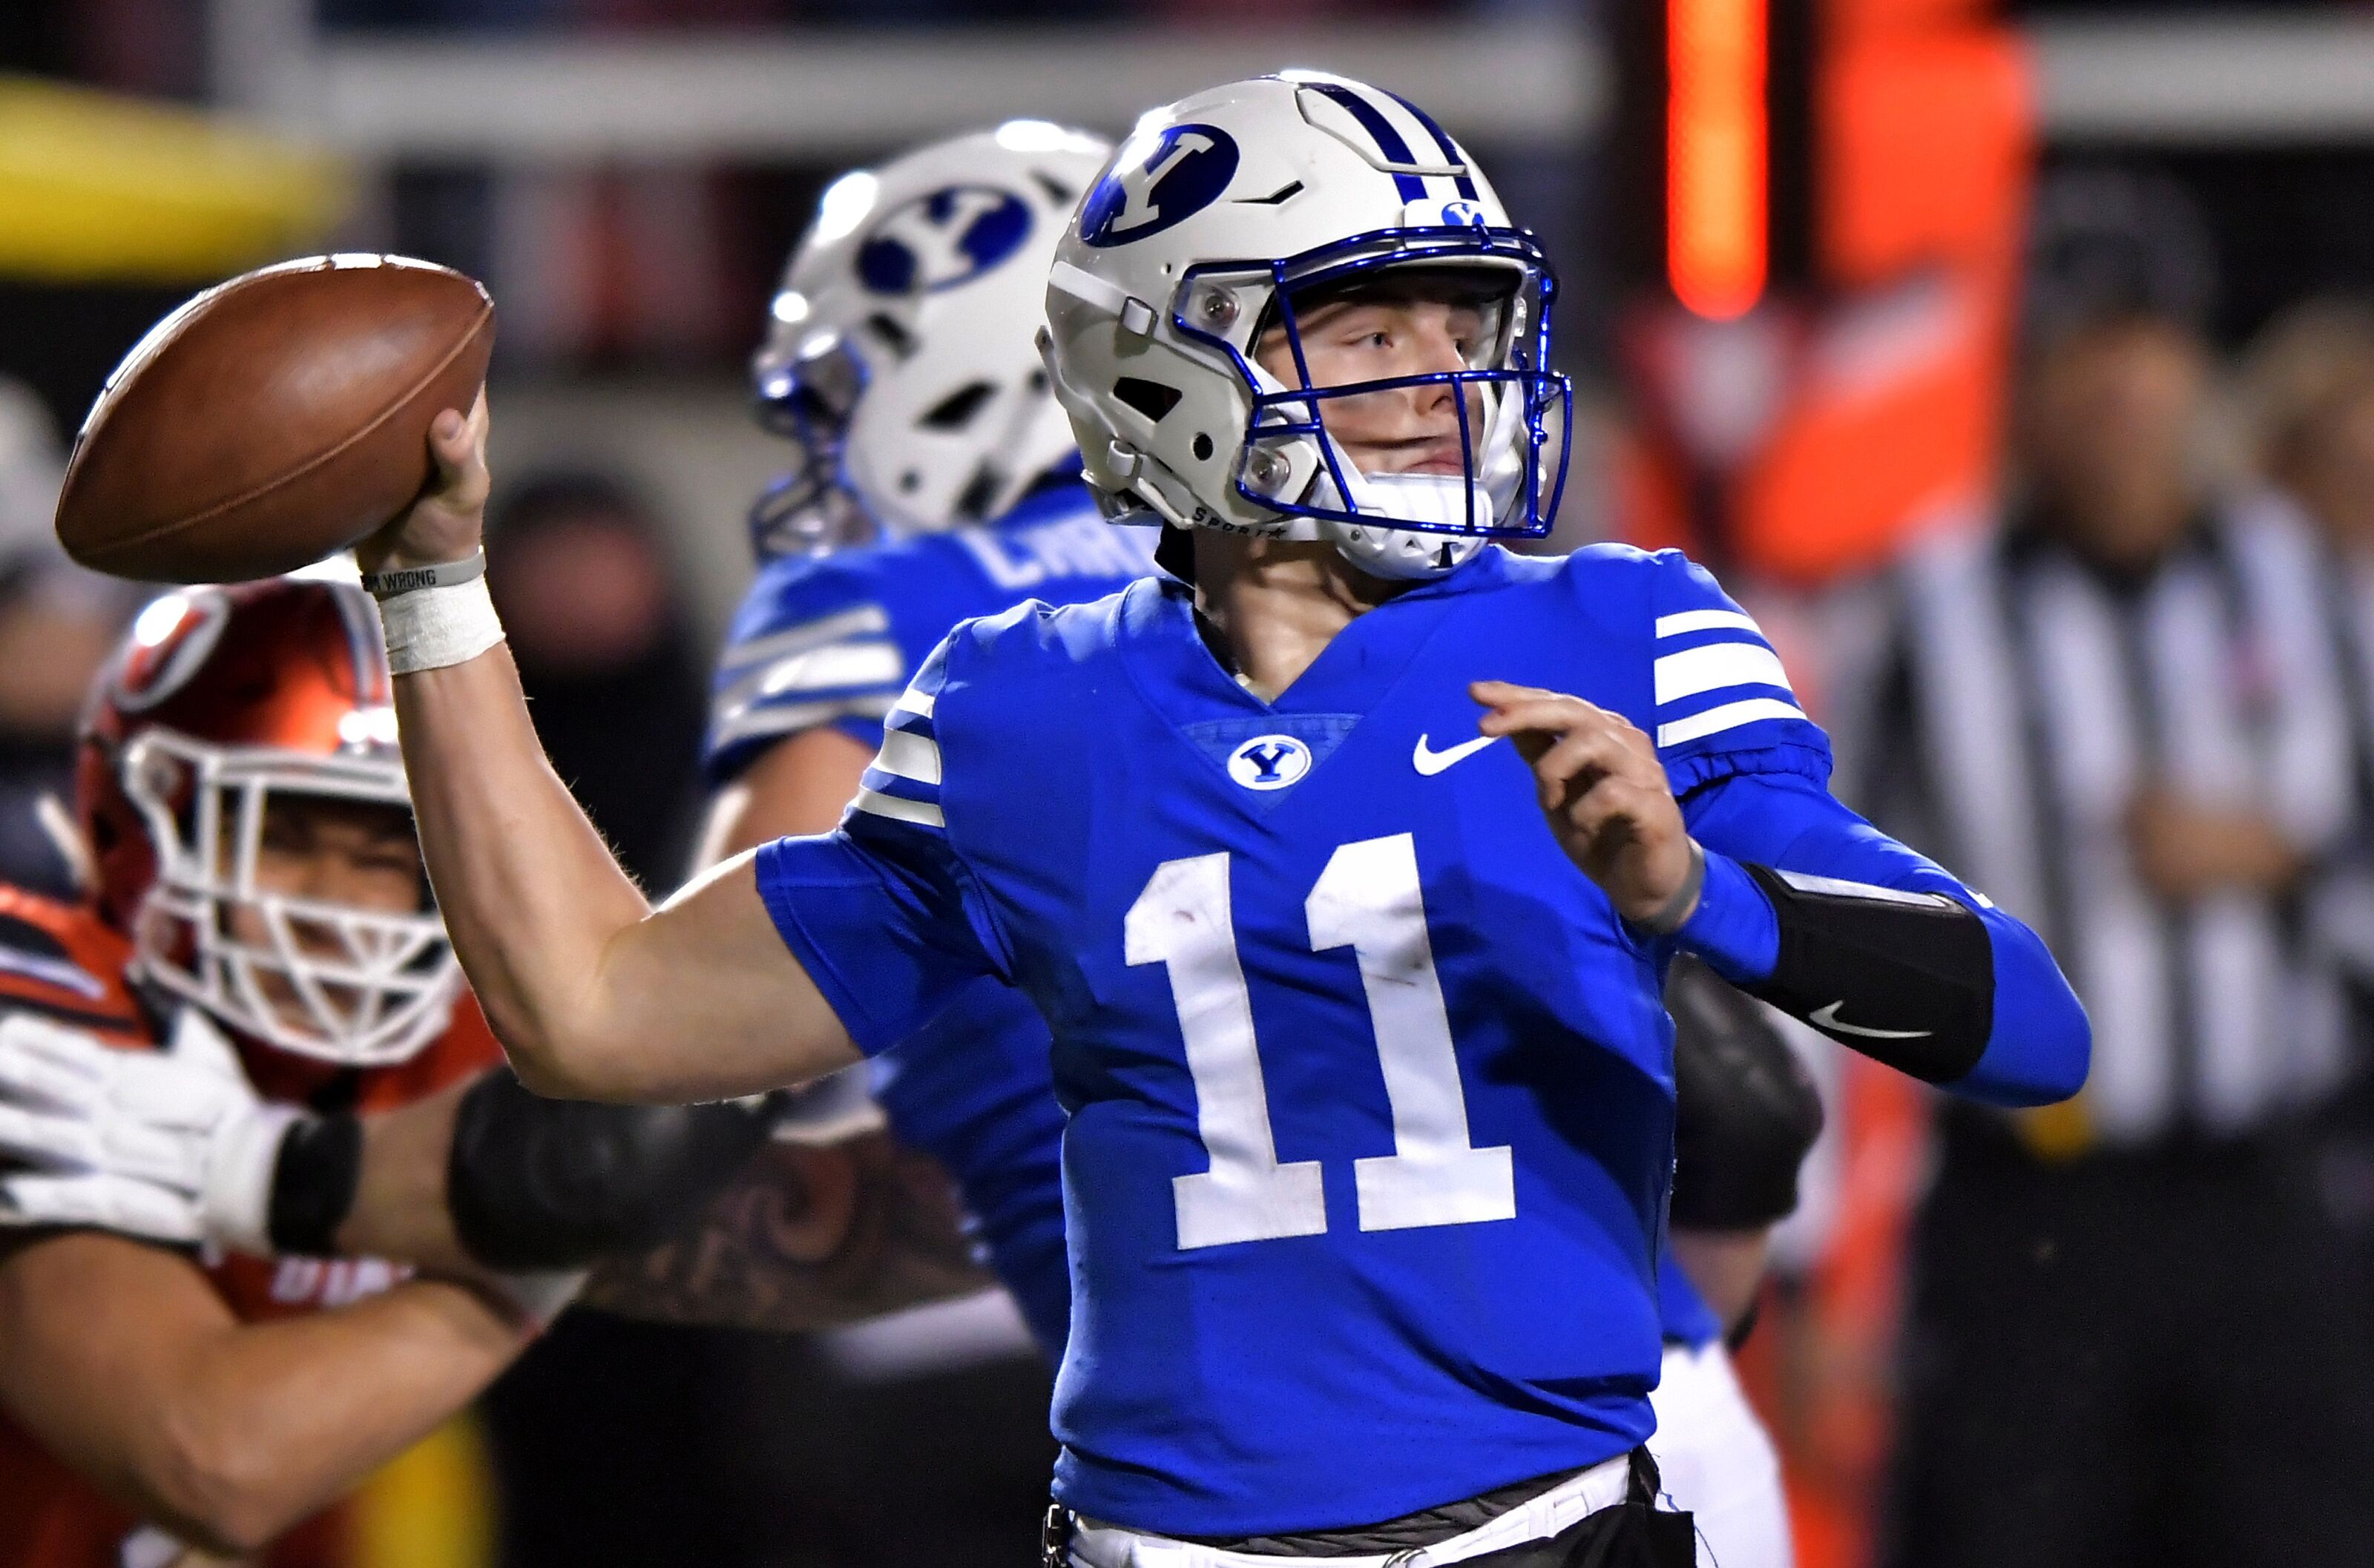 Byu Football Why Scheduling Dixie State Is A Great Addition